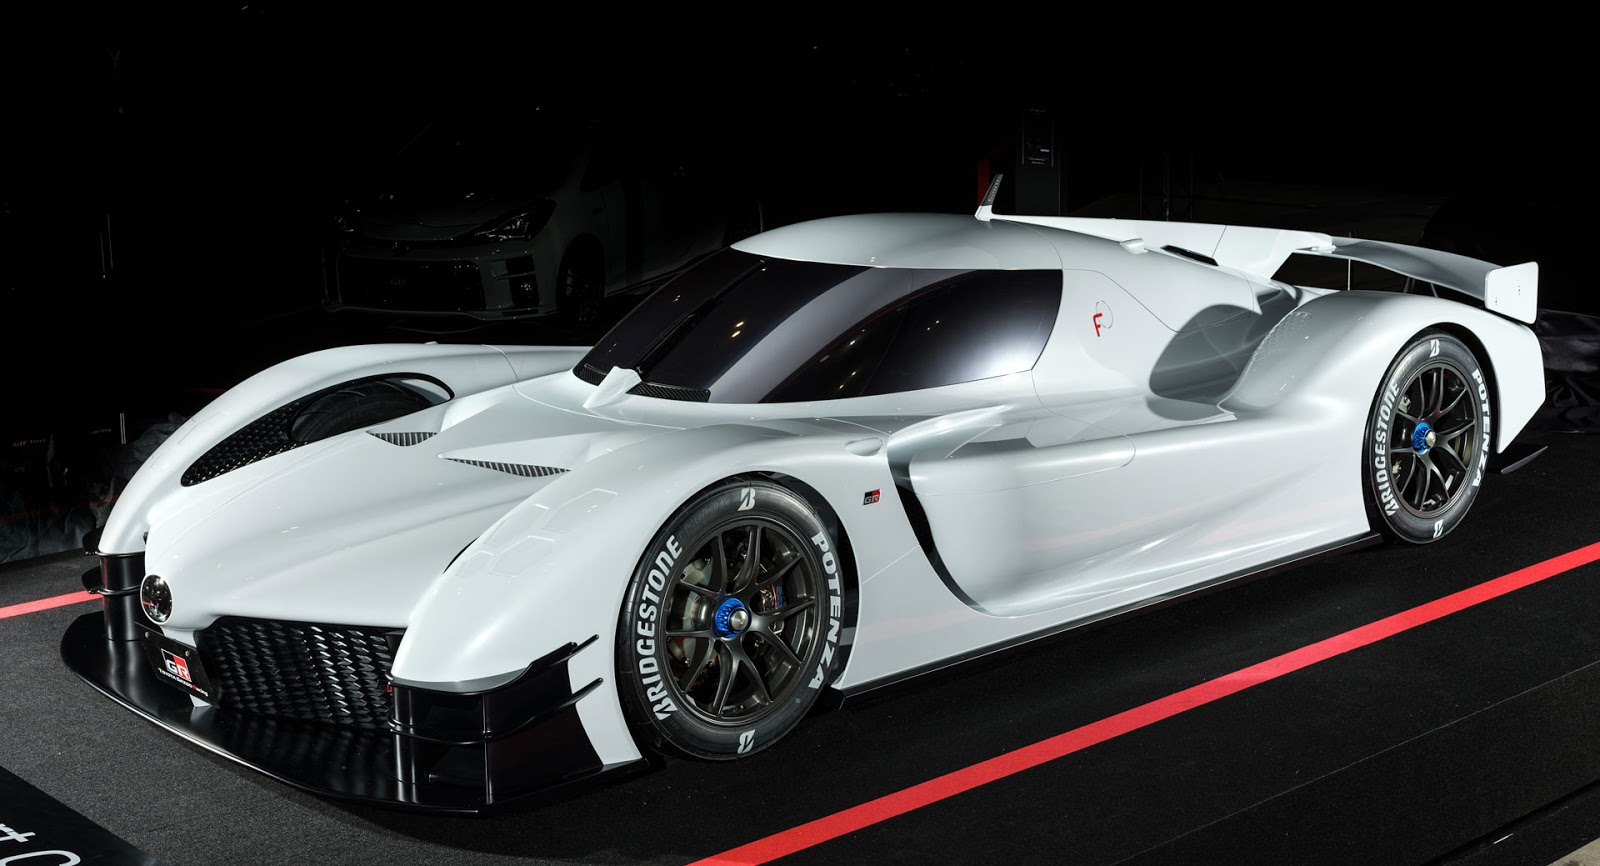 toyota gazoo racing gr super sport concept packs 986hp turbo v6 hybrid. Black Bedroom Furniture Sets. Home Design Ideas